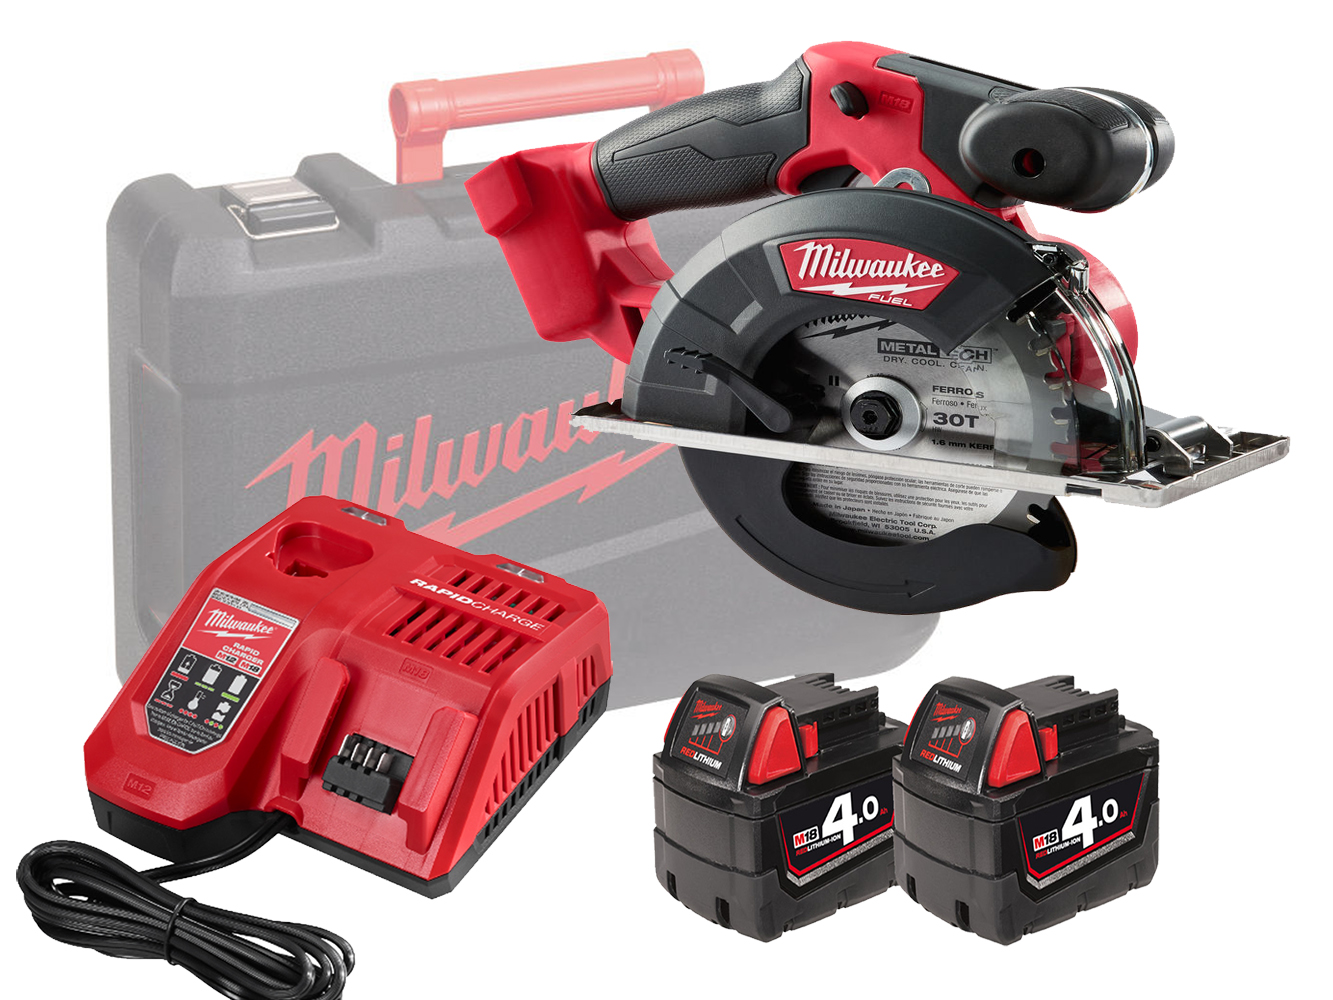 Milwaukee M18FMCS 18V FUEL 150mm (57mm) Metal Circular Saw - 4.0ah Pack